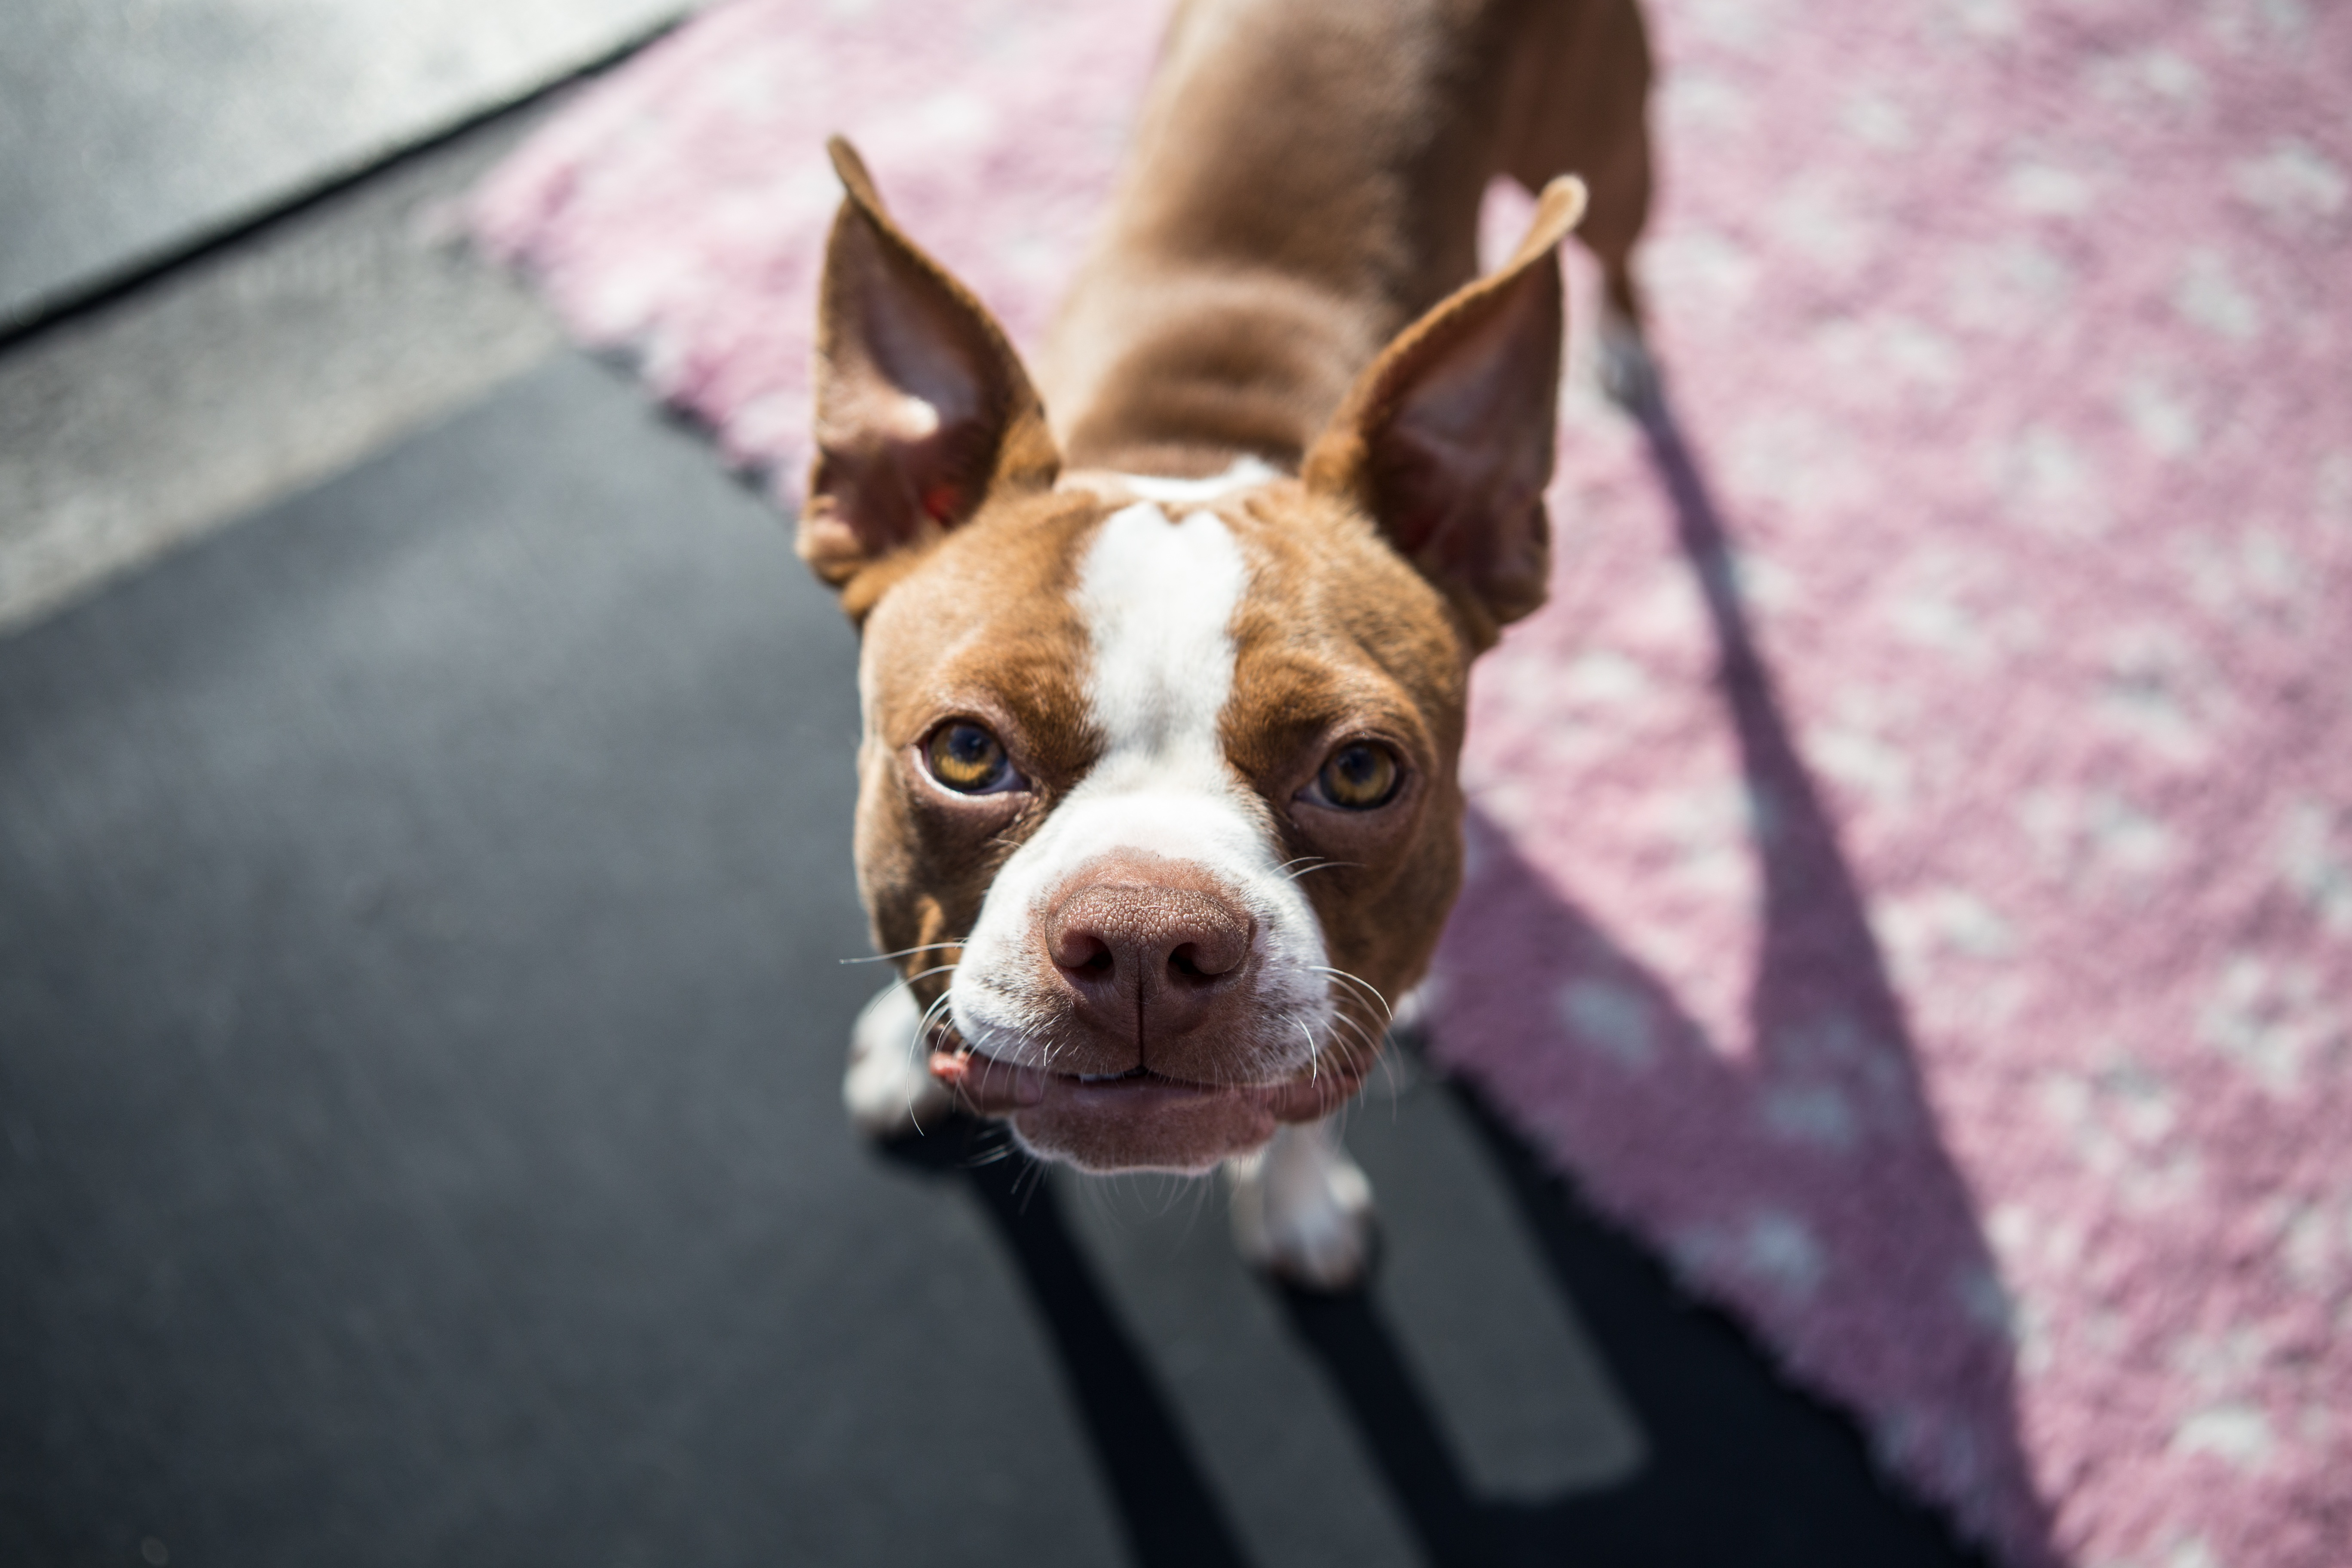 72592 download wallpaper Animals, Boston Terrier, Dog, Puppy, Muzzle screensavers and pictures for free